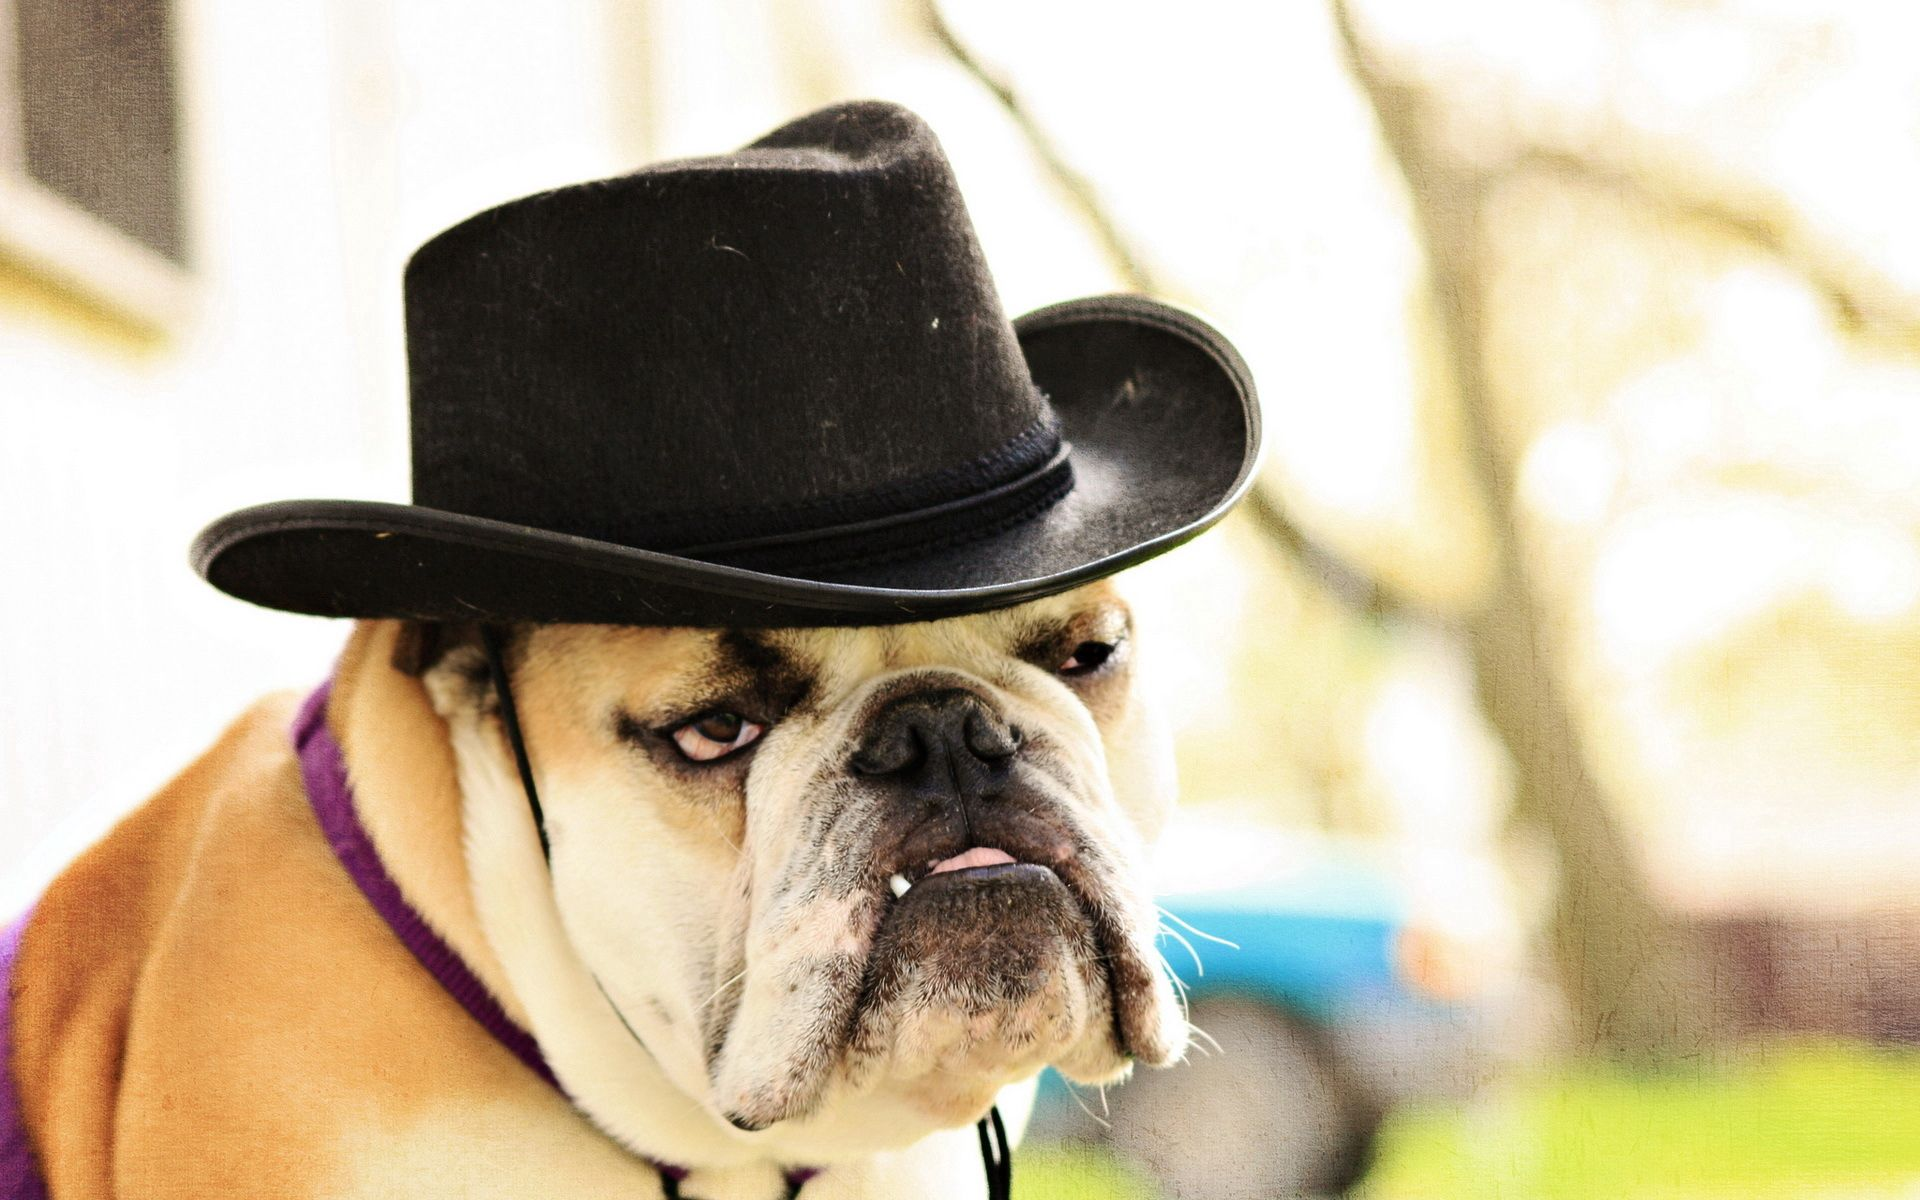 61709 download wallpaper Animals, Dog, Bulldog, Hat, Sight, Opinion screensavers and pictures for free